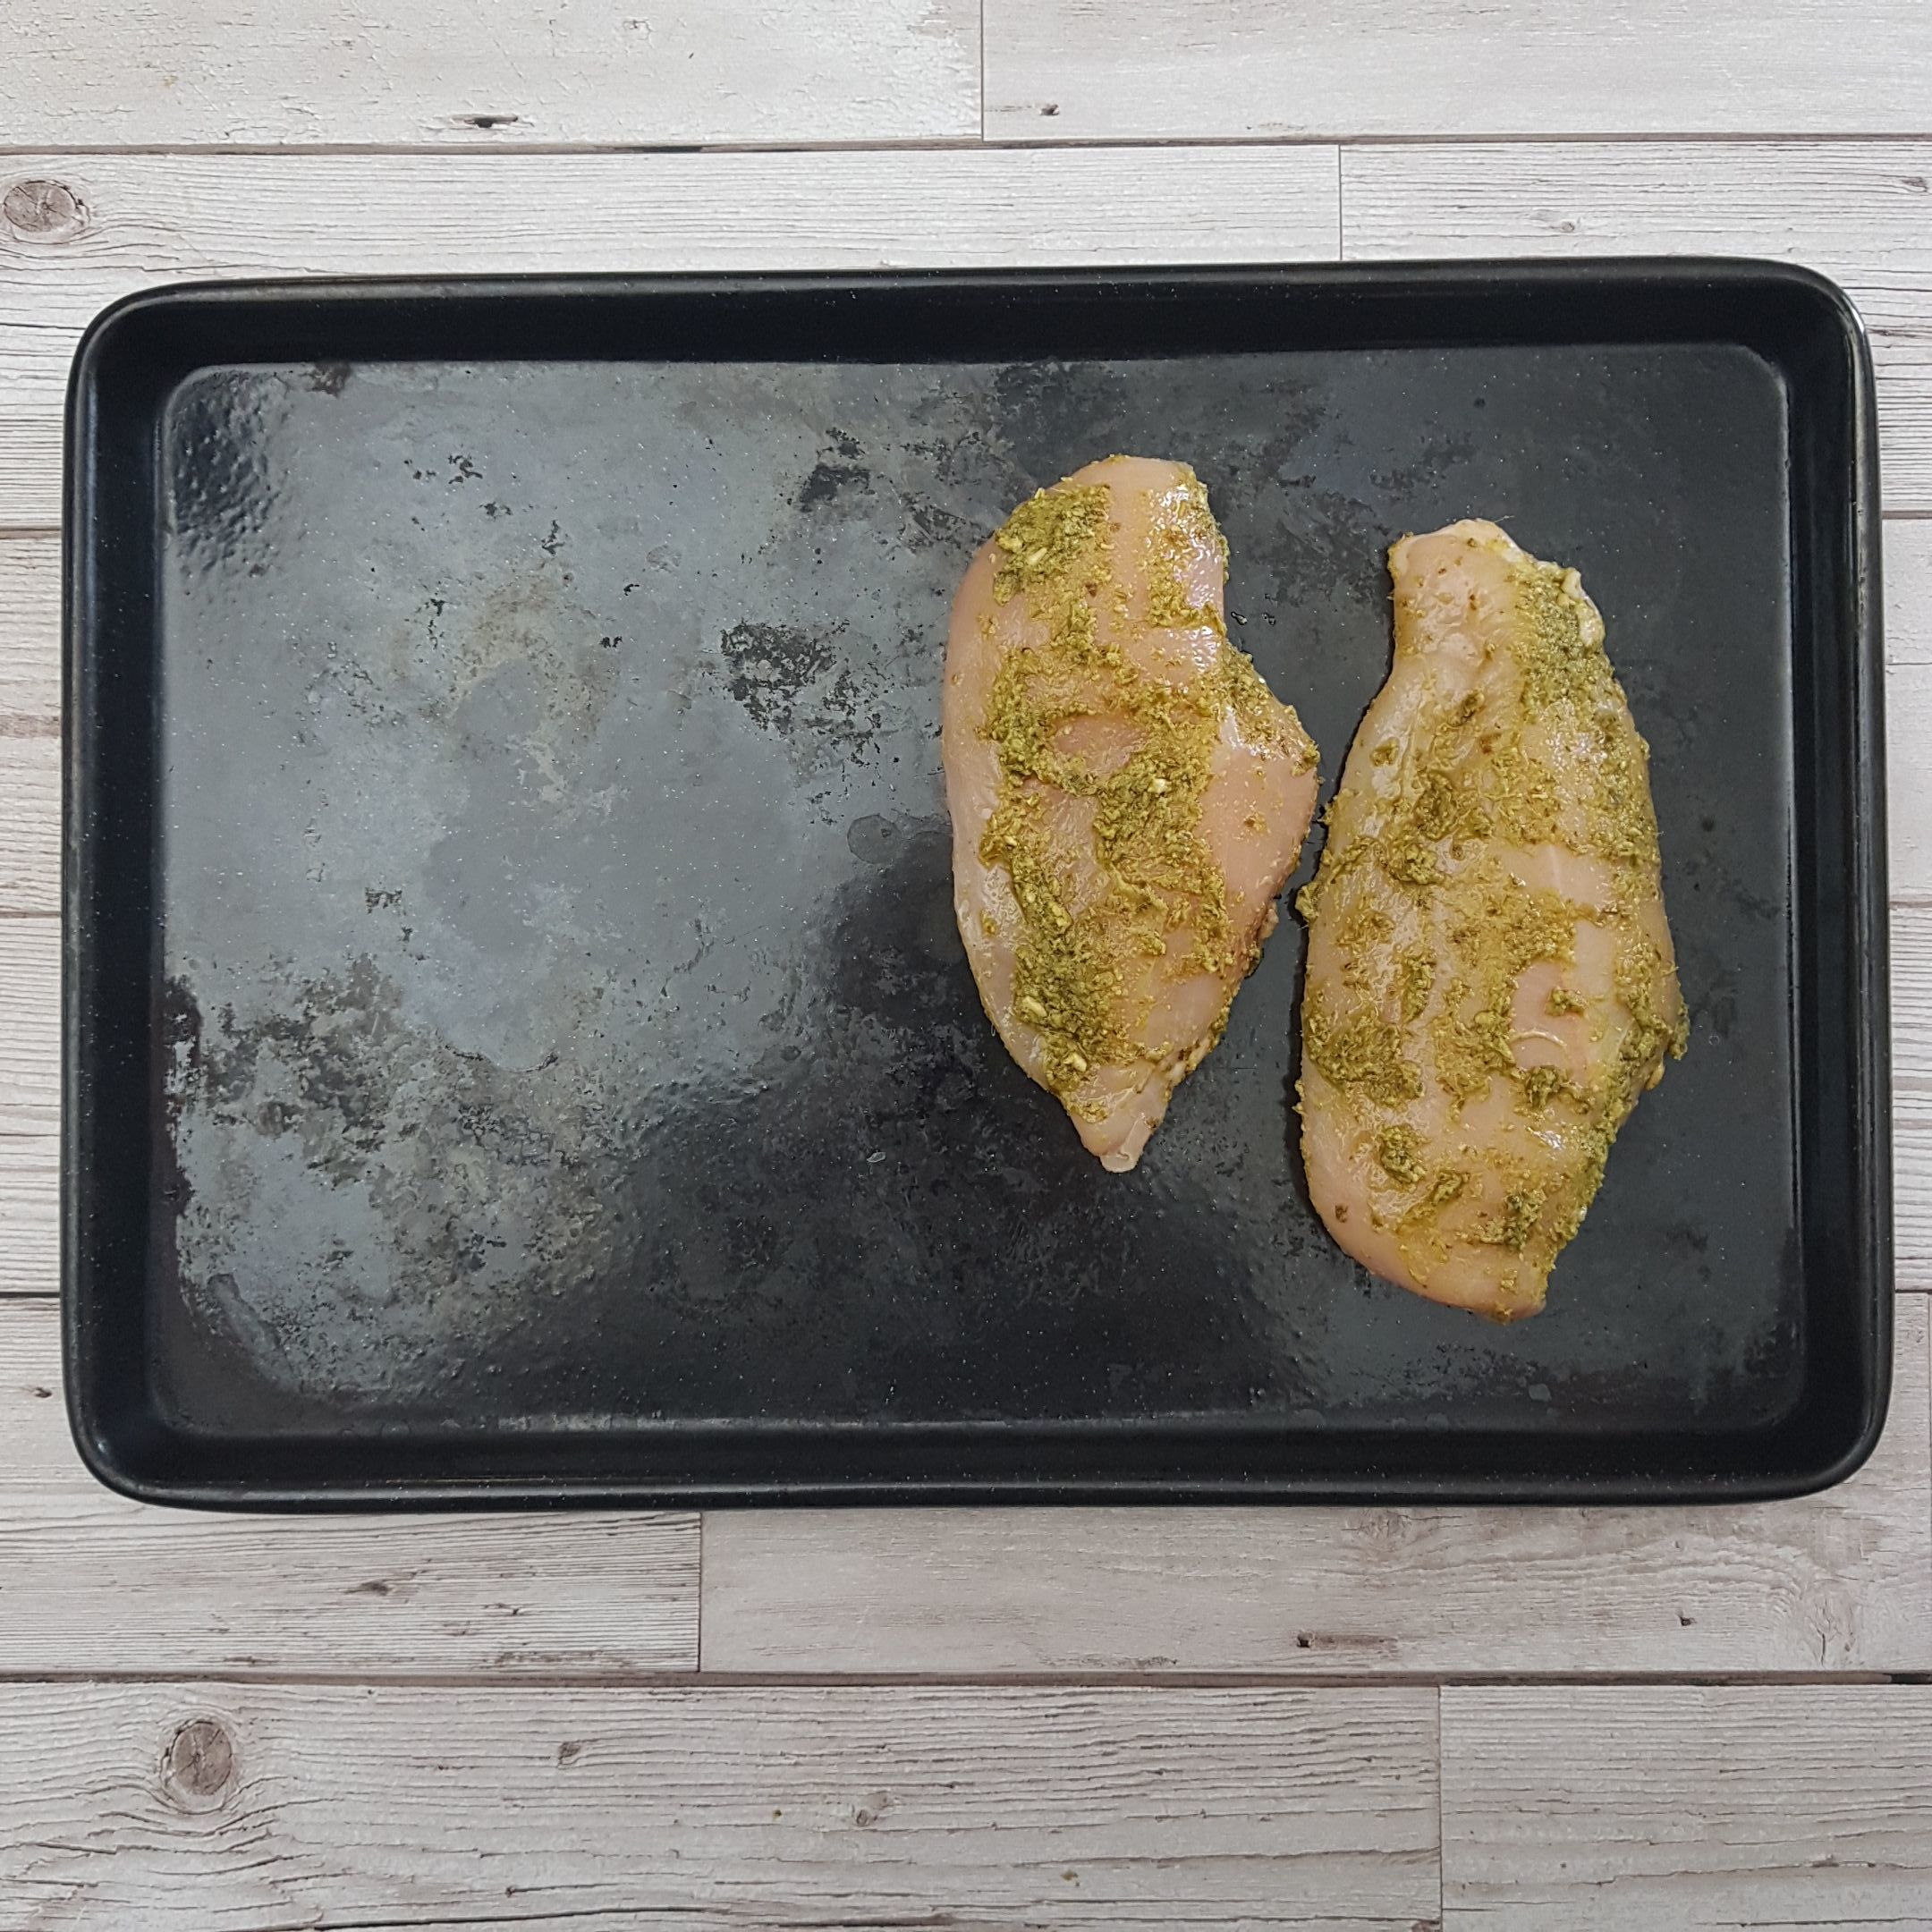 Place the chicken on an oven tray and bake for 10 minutes. Set a timer!